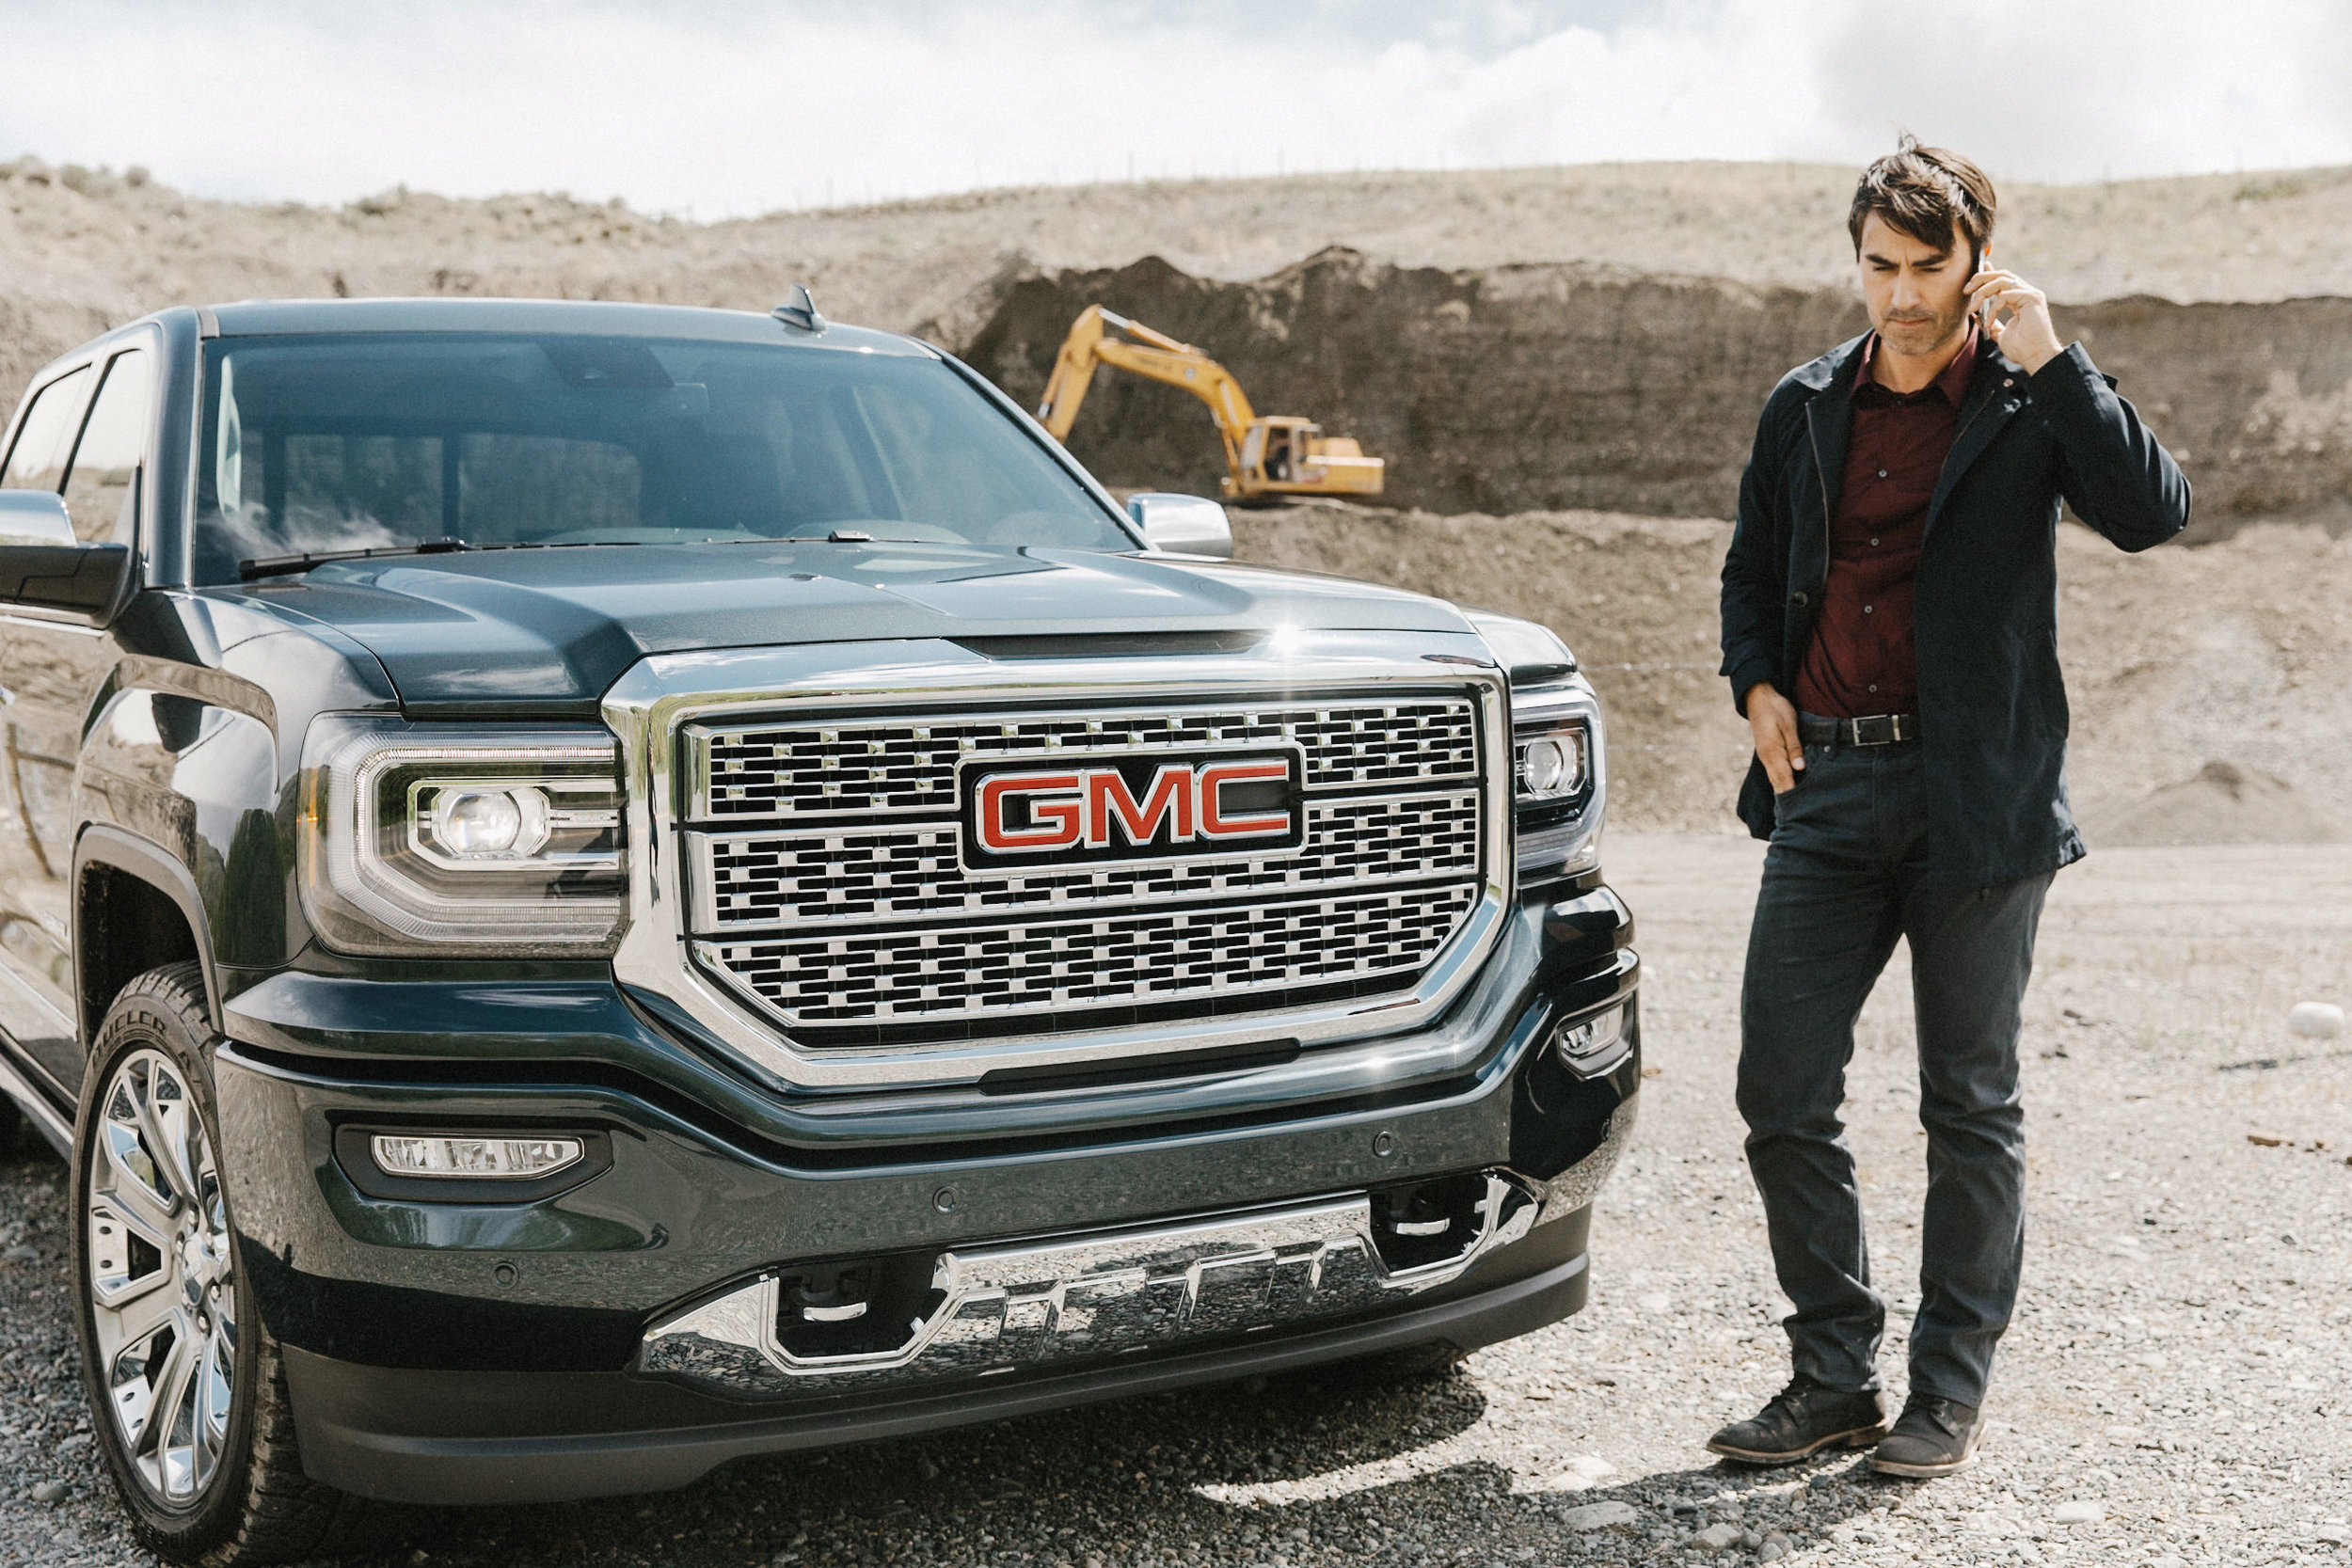 GMC Like A Pro David Guenther -033.JPG